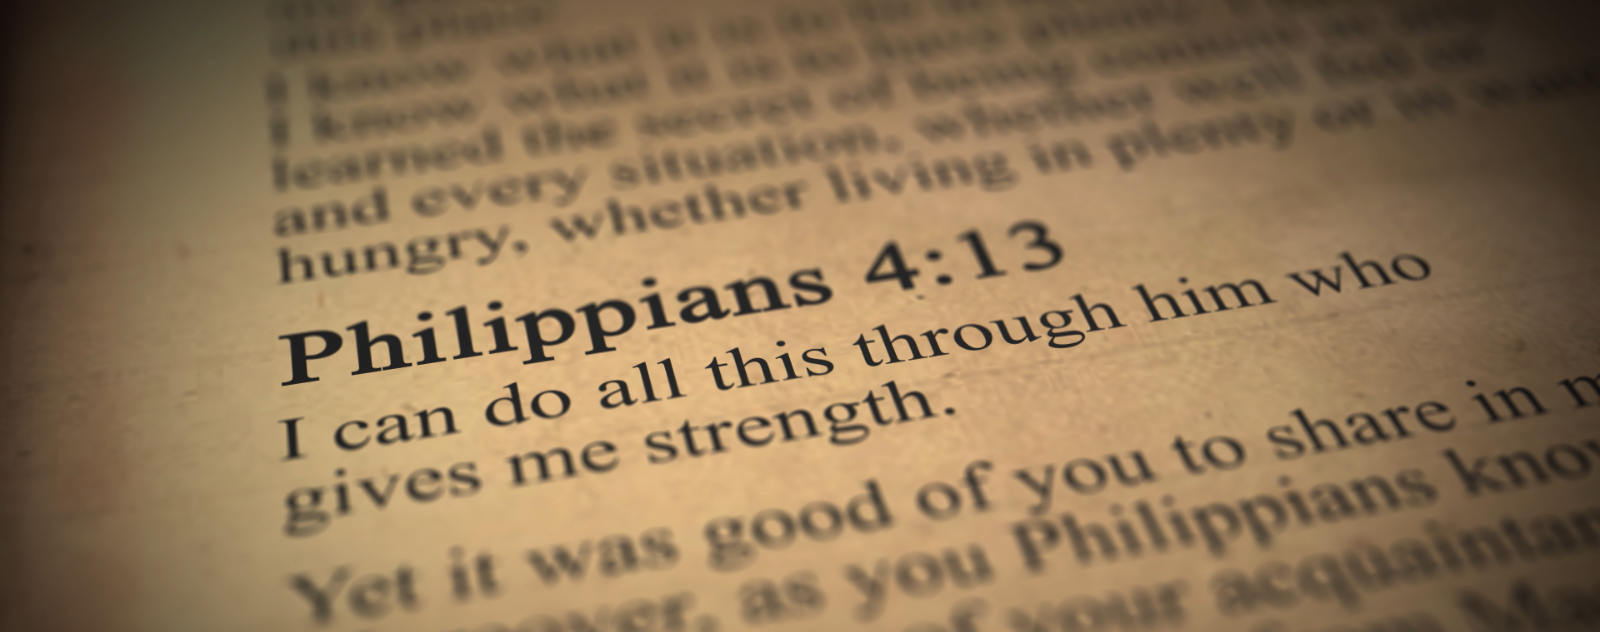 The Misuse of Philippians 4:13